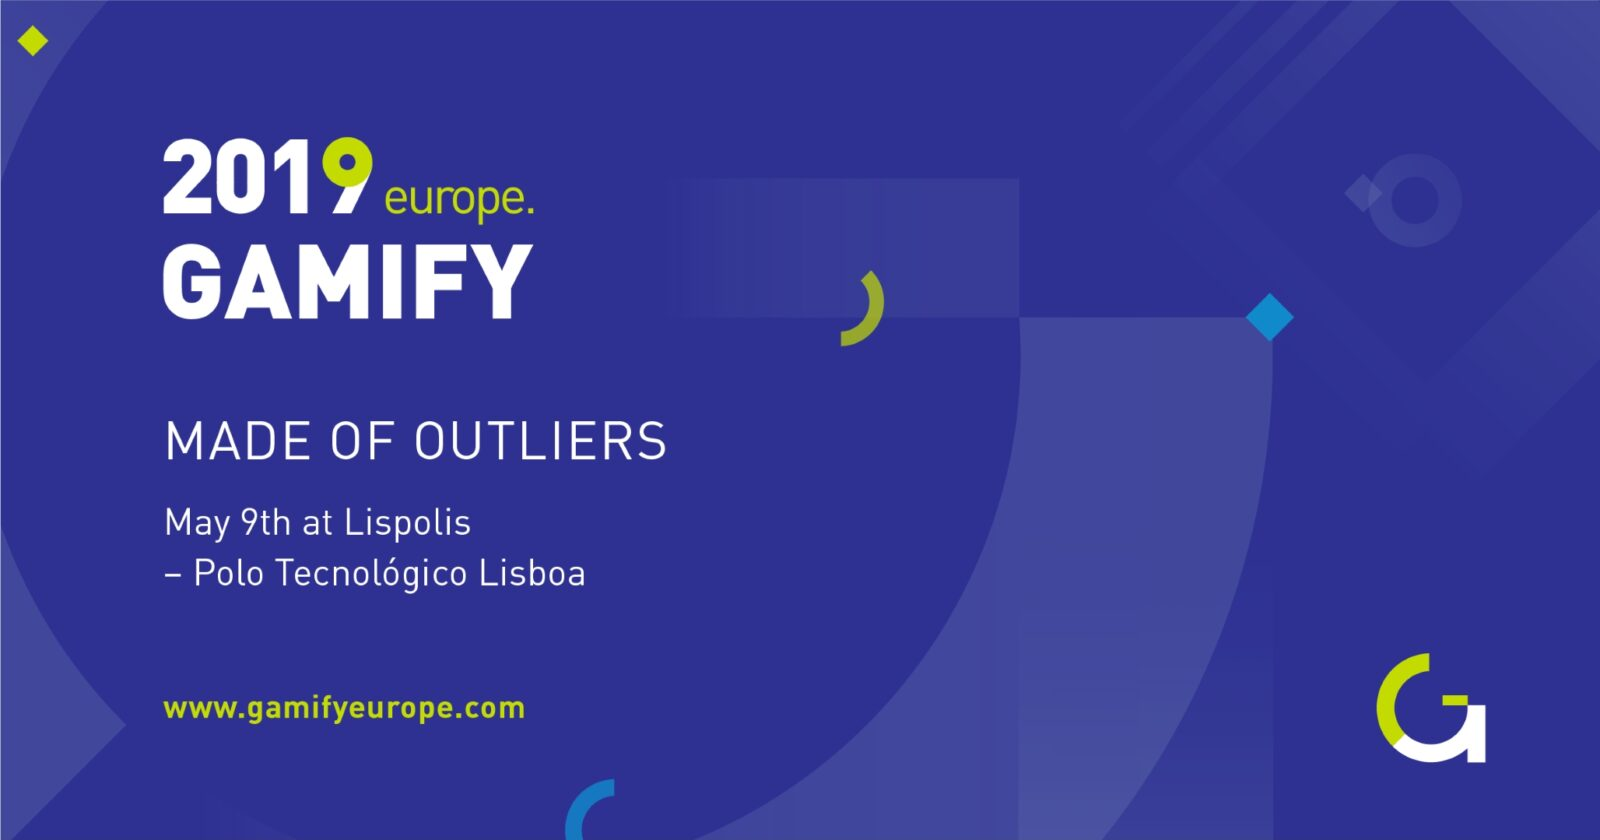 Gamify Europe